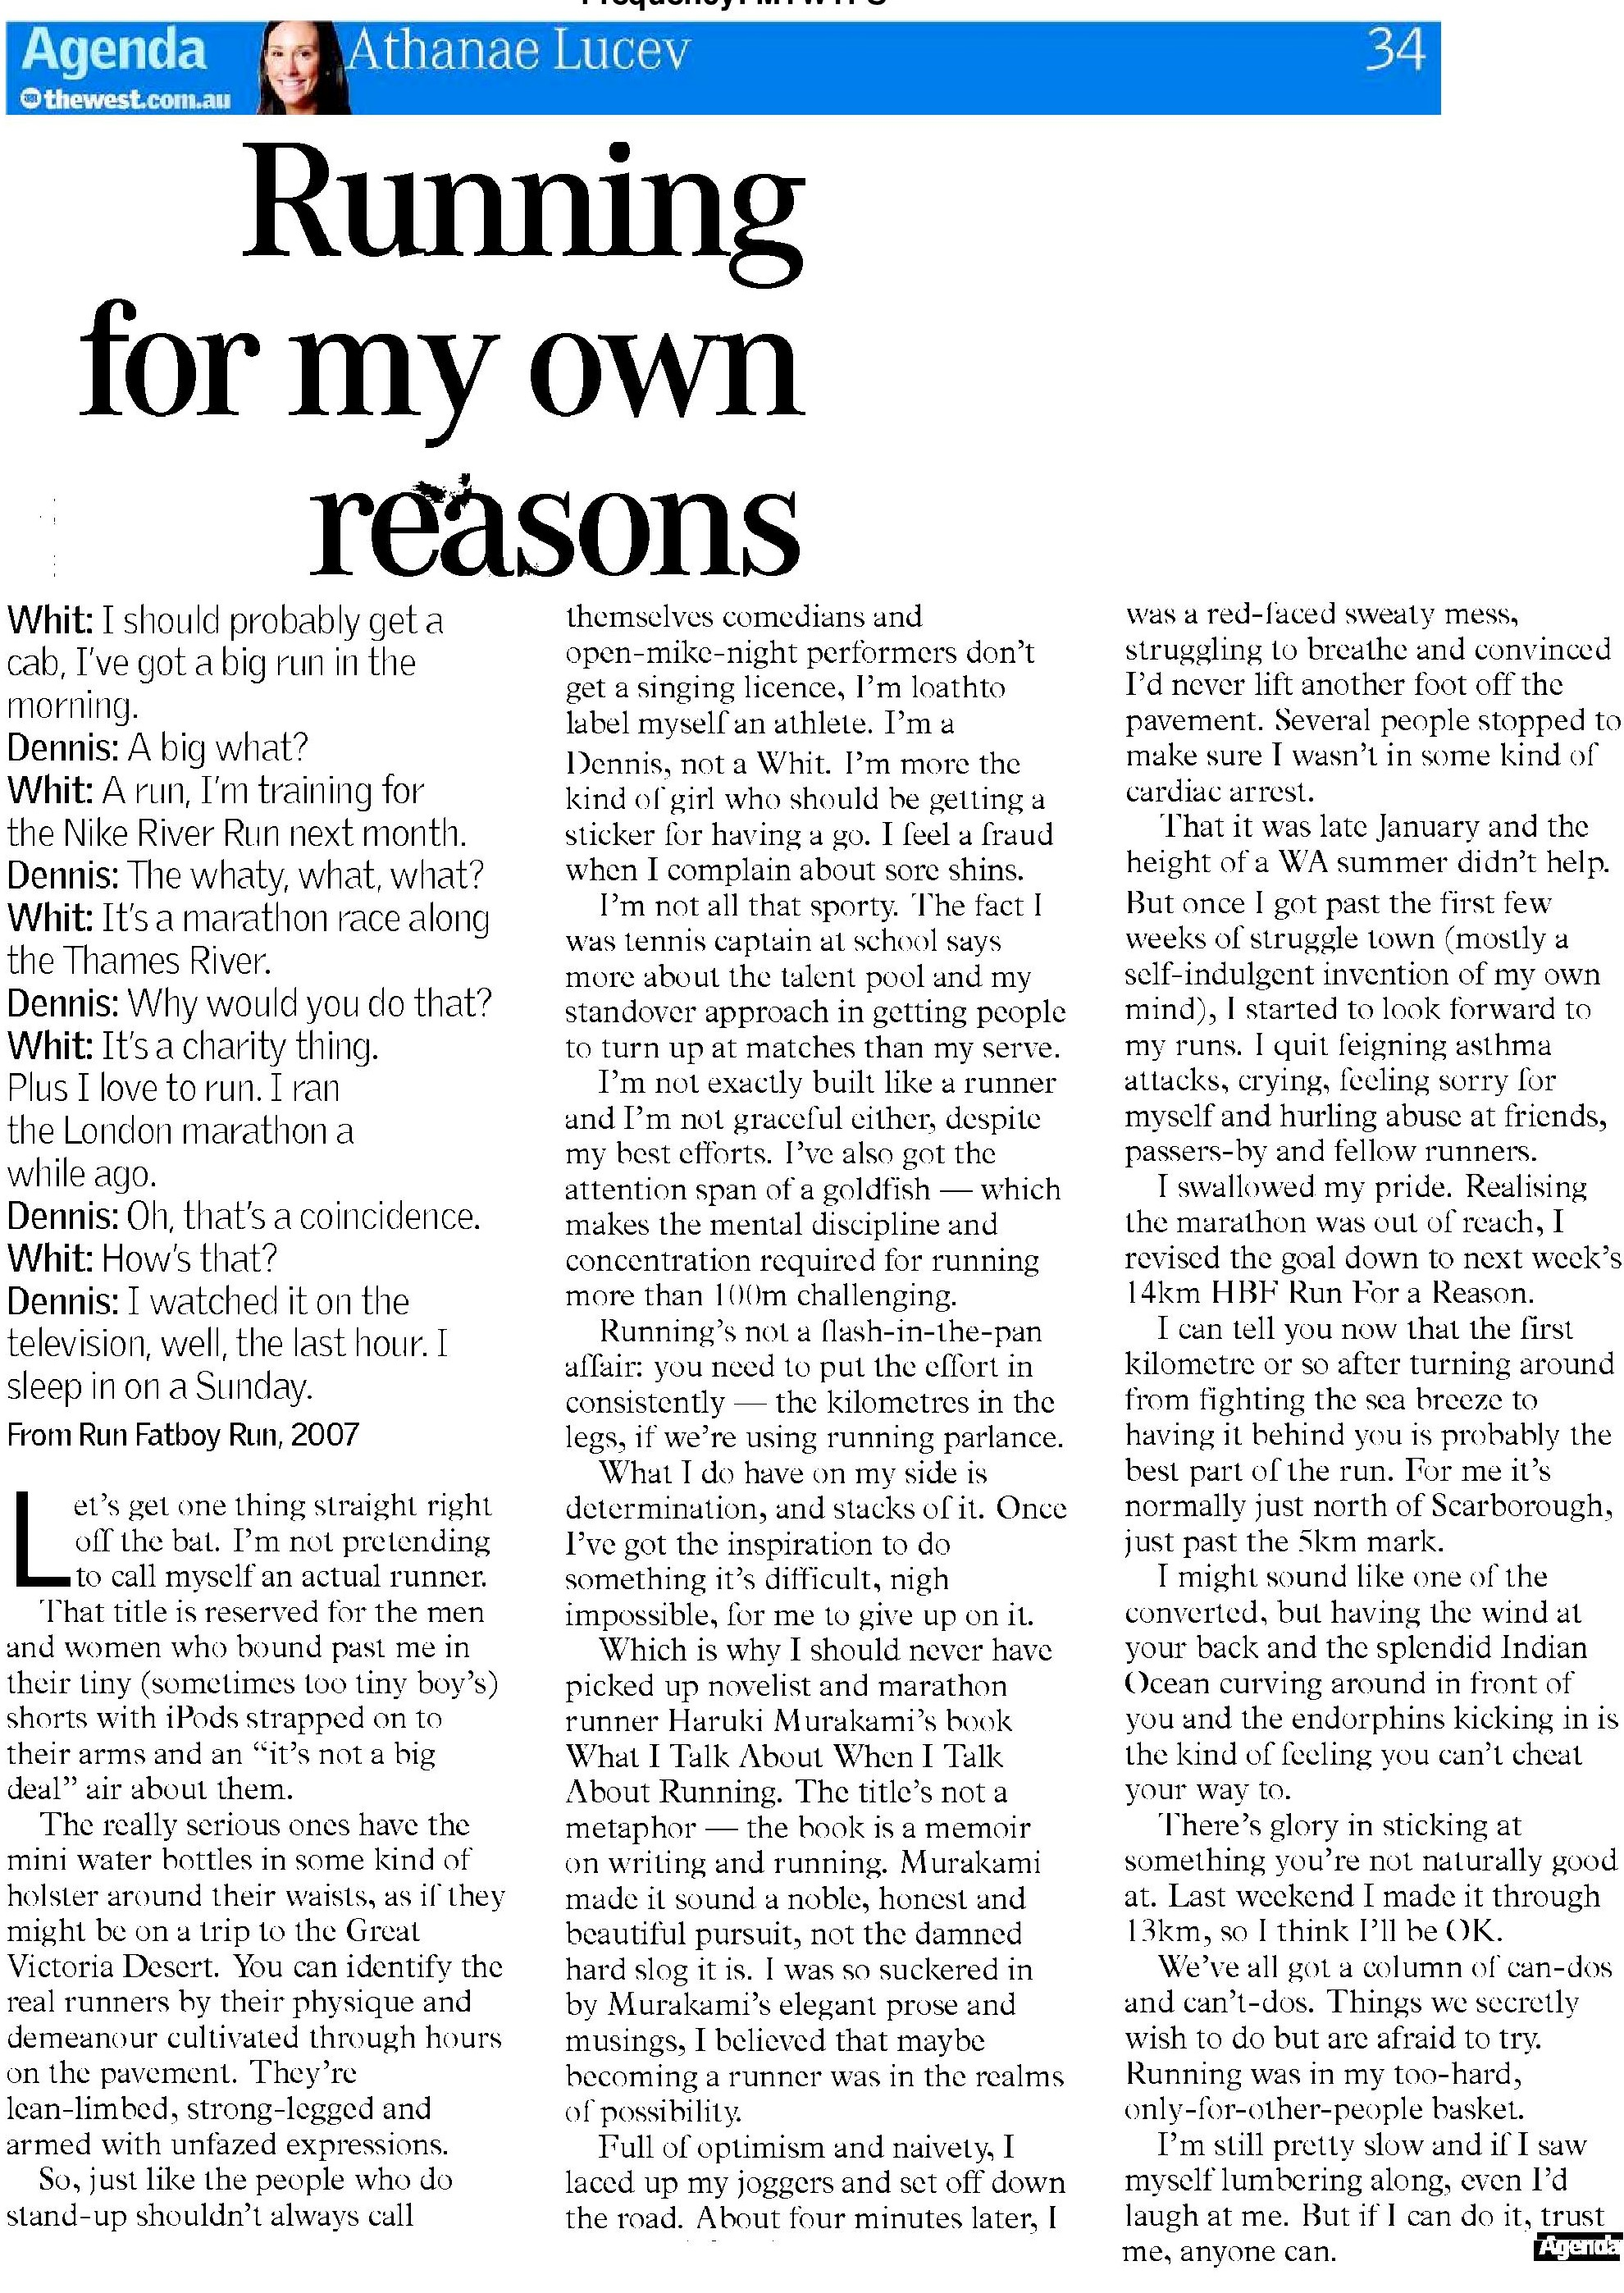 Running for my own reasons - THE WEST AUSTRALIAN - AGENDA